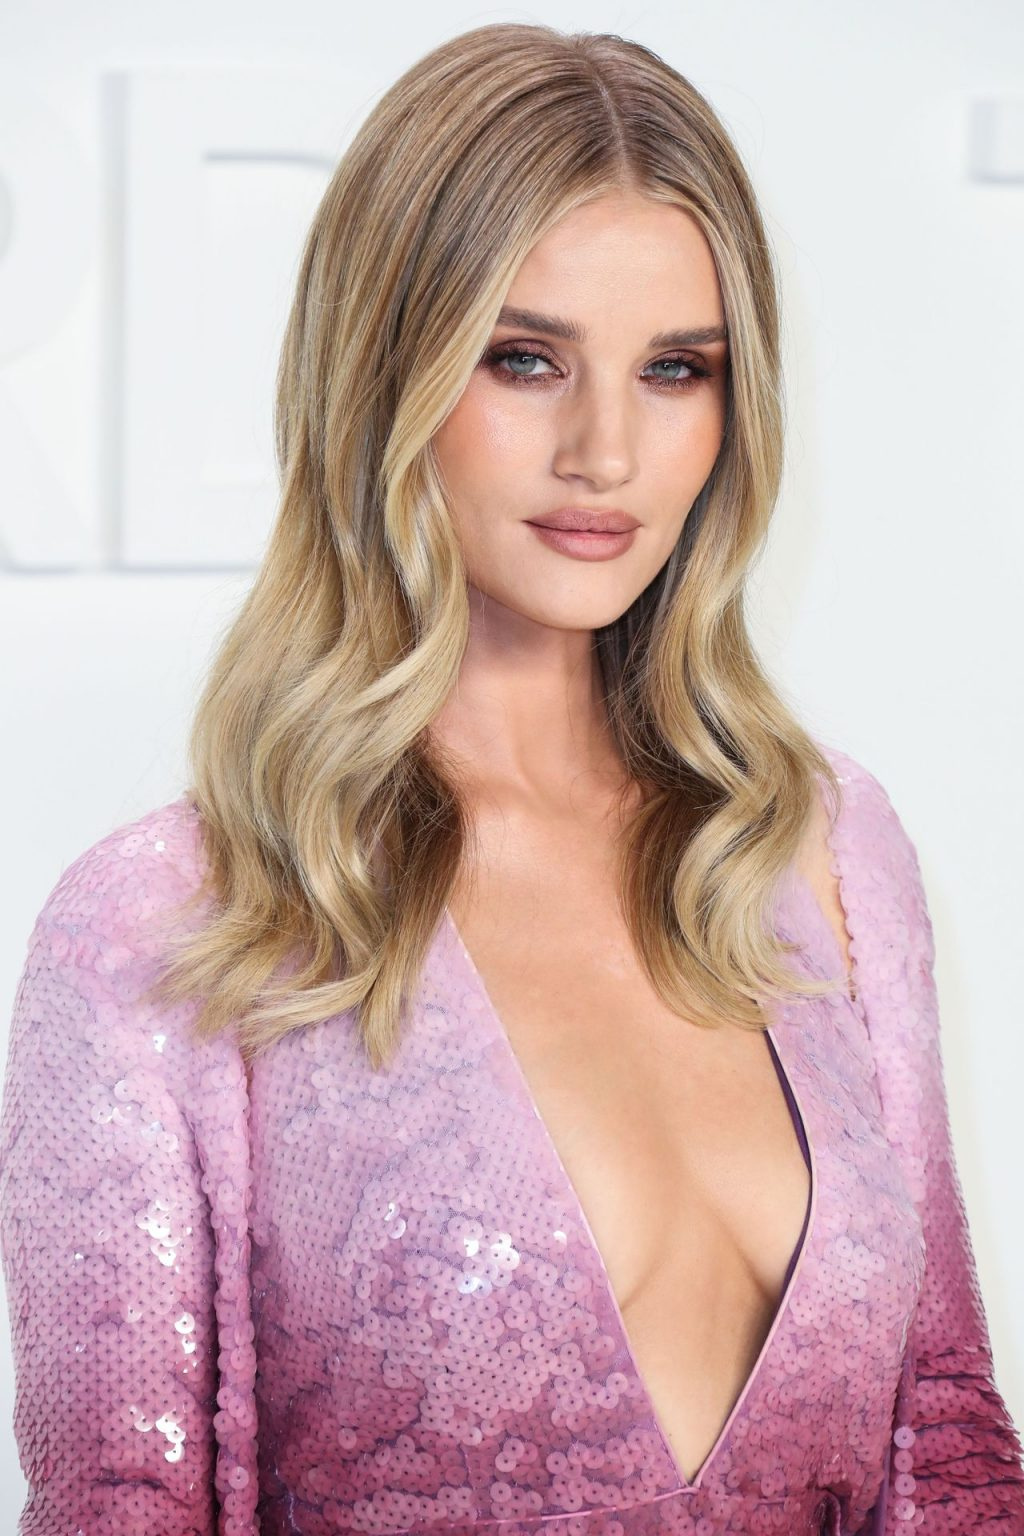 Rosie Huntington Whiteley Sexy The Fappening Blog 109 1024x1536 - Rosie Huntington-Whiteley Shows Her Cleavage at the Tom Ford Fashion Show (115 Photos)